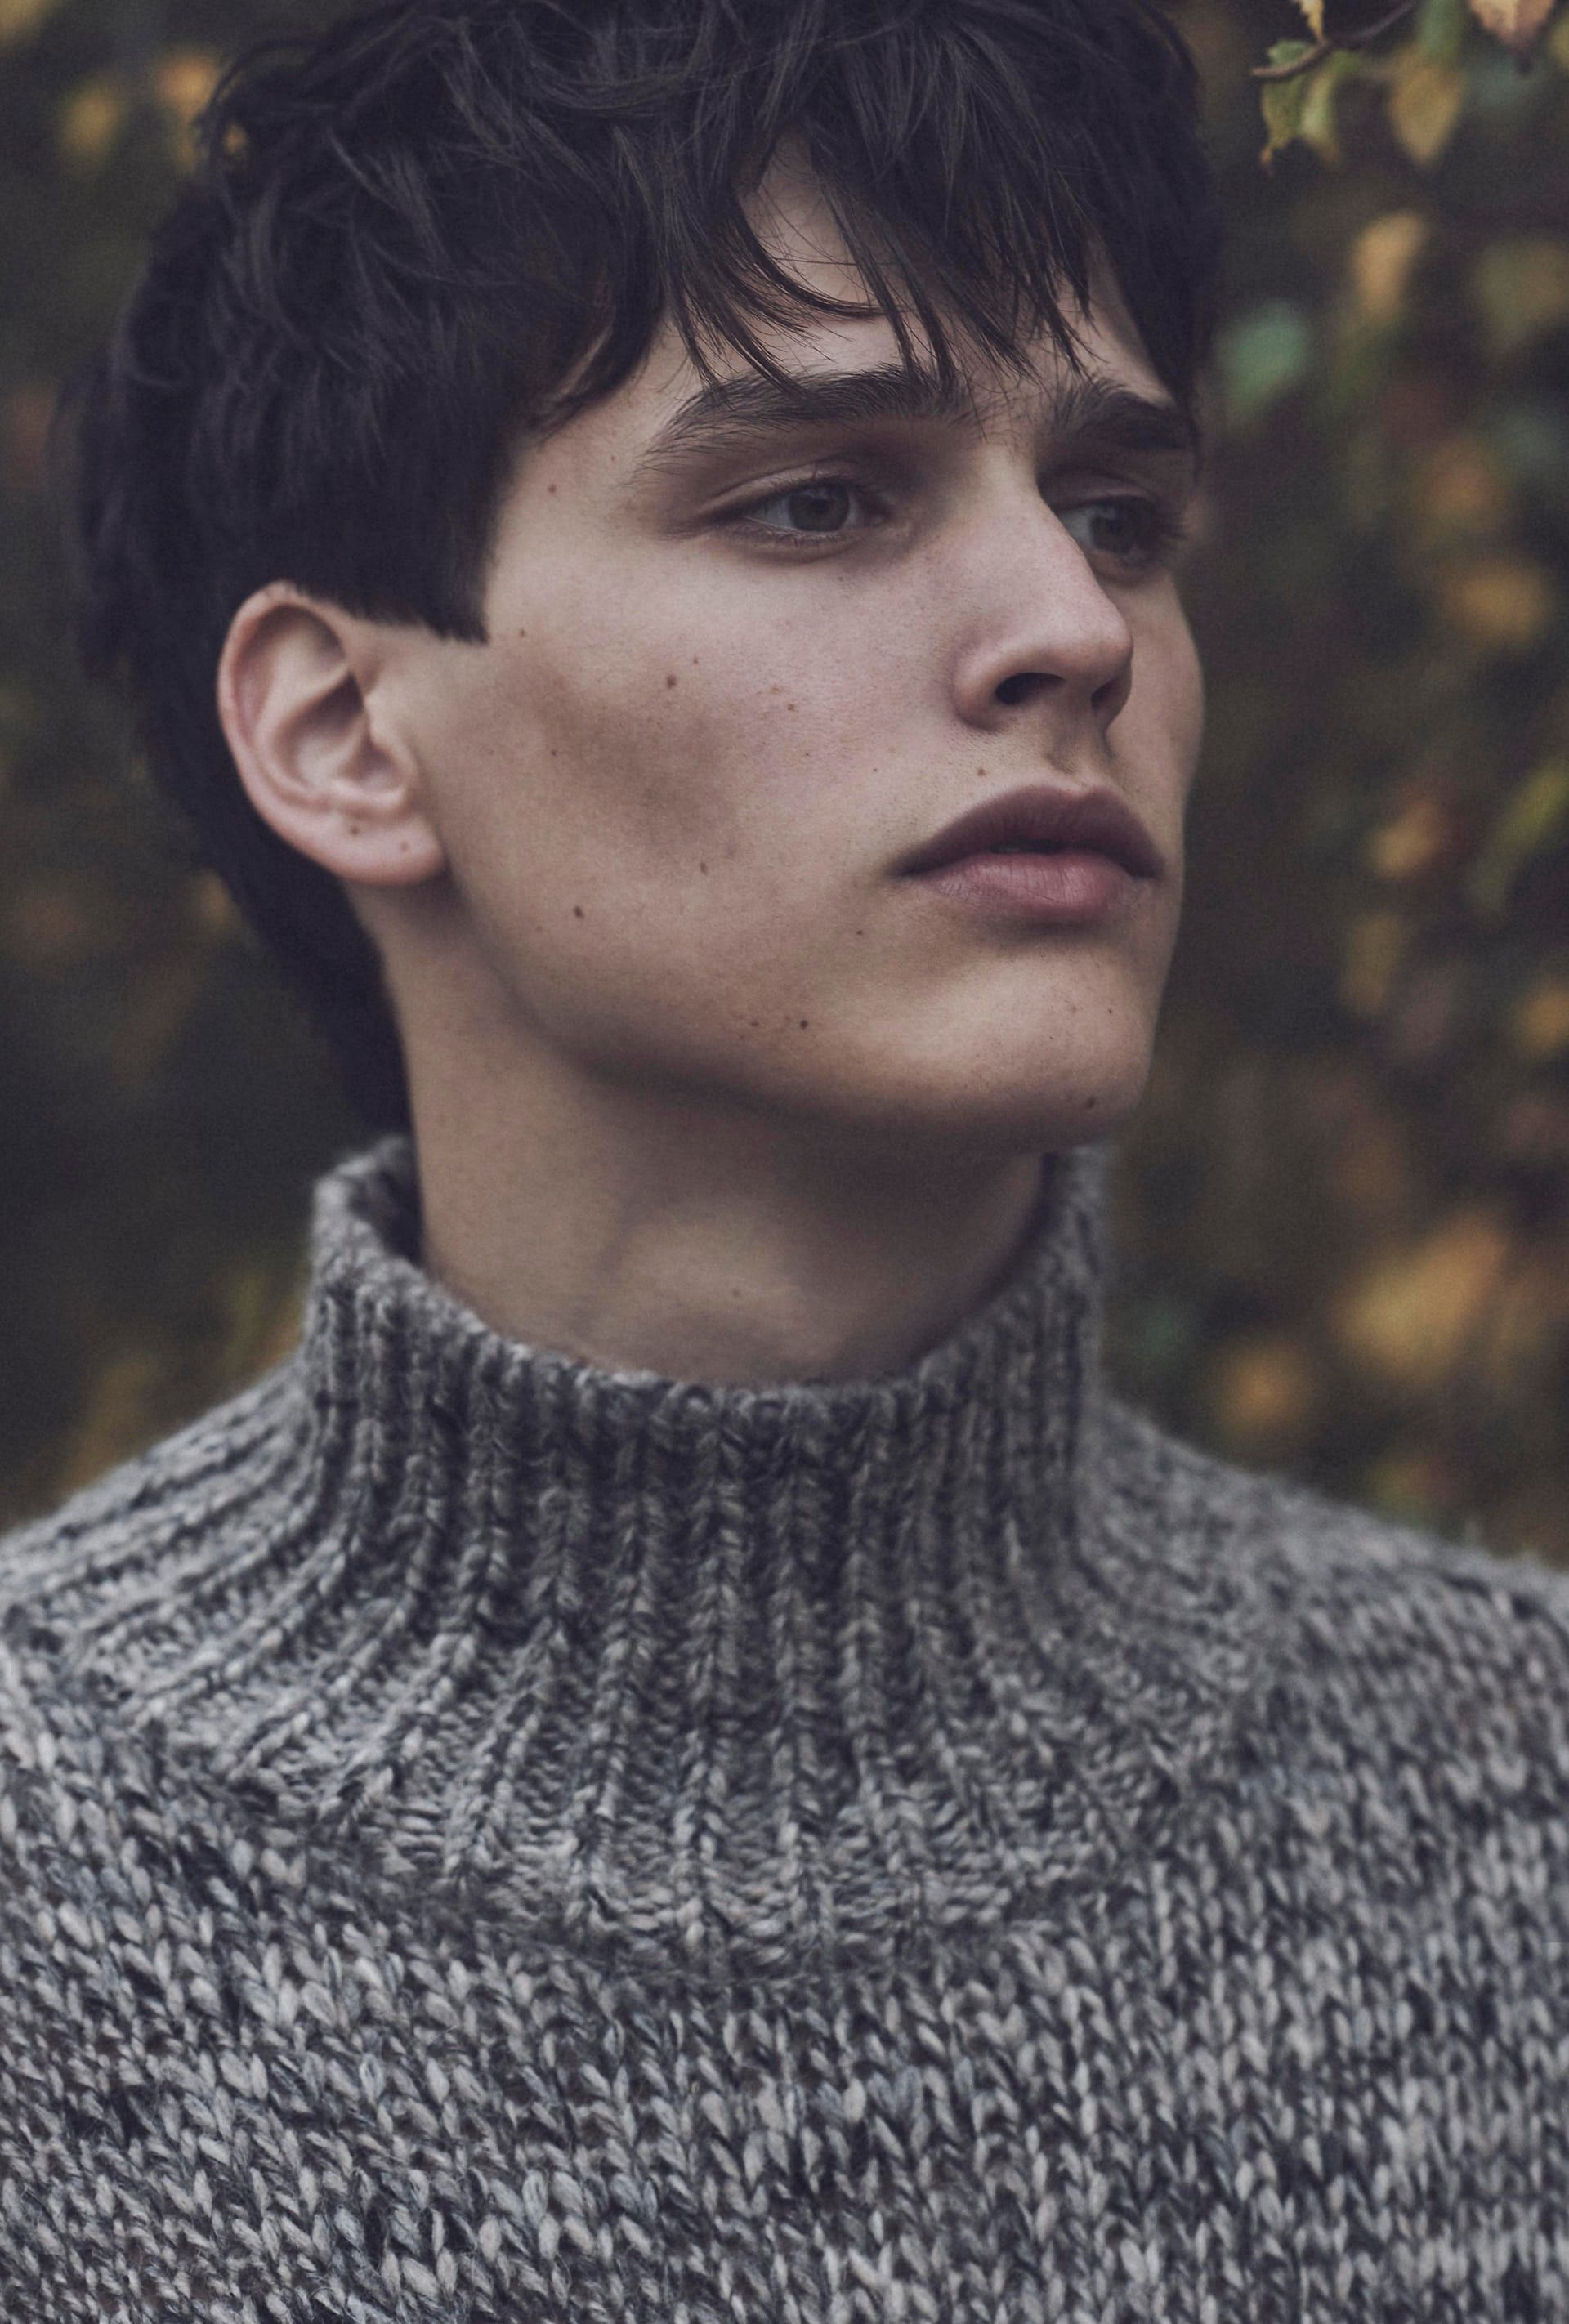 Fall guy: men's autumn jackets and jumpers – in pictures